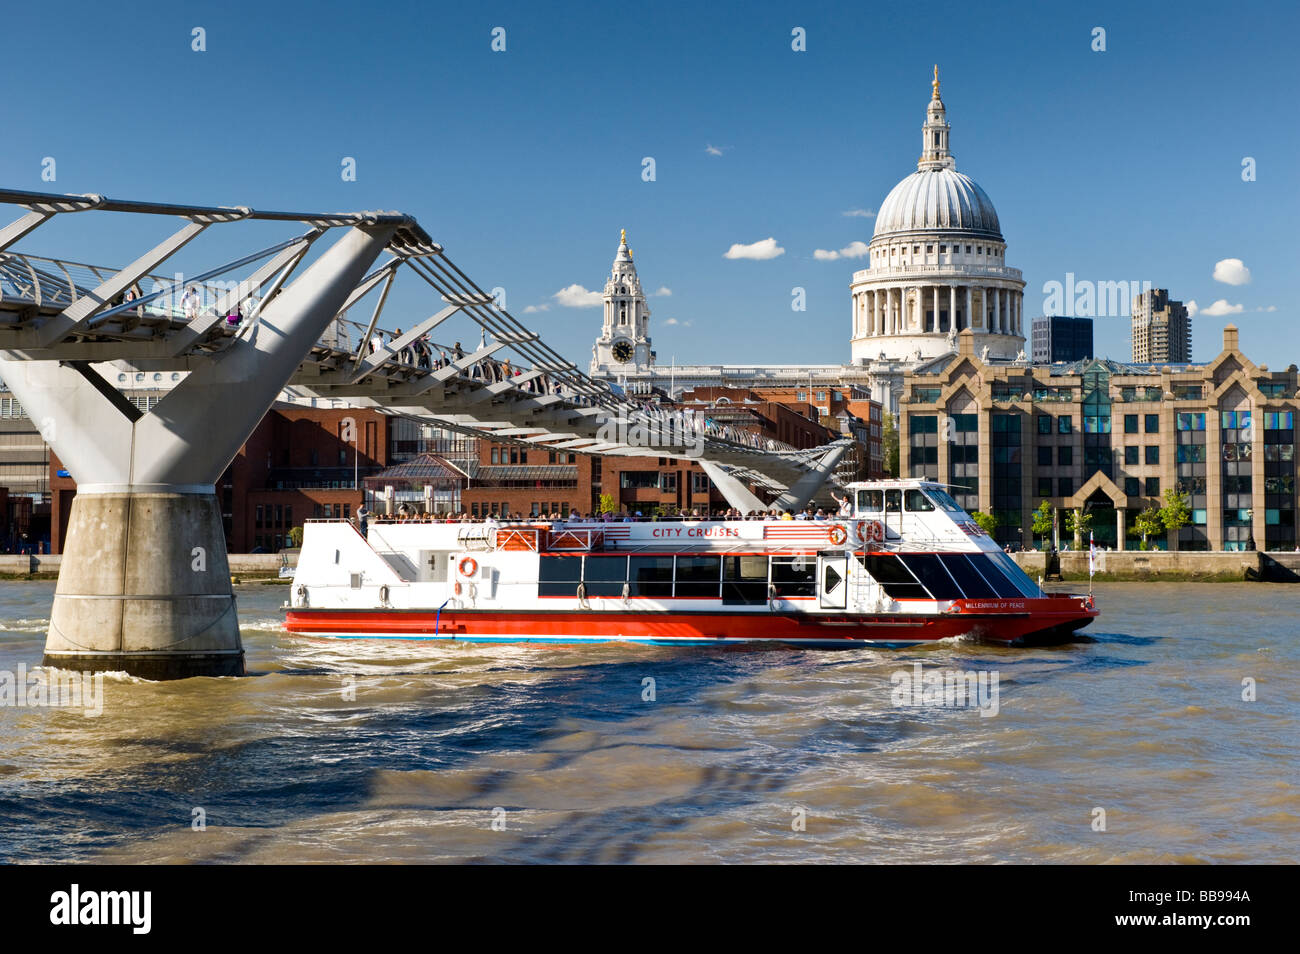 River Thames Tour Boat Passing Beneath the Millennium Bridge with St Pauls Cathedral in Background, London, England, - Stock Image